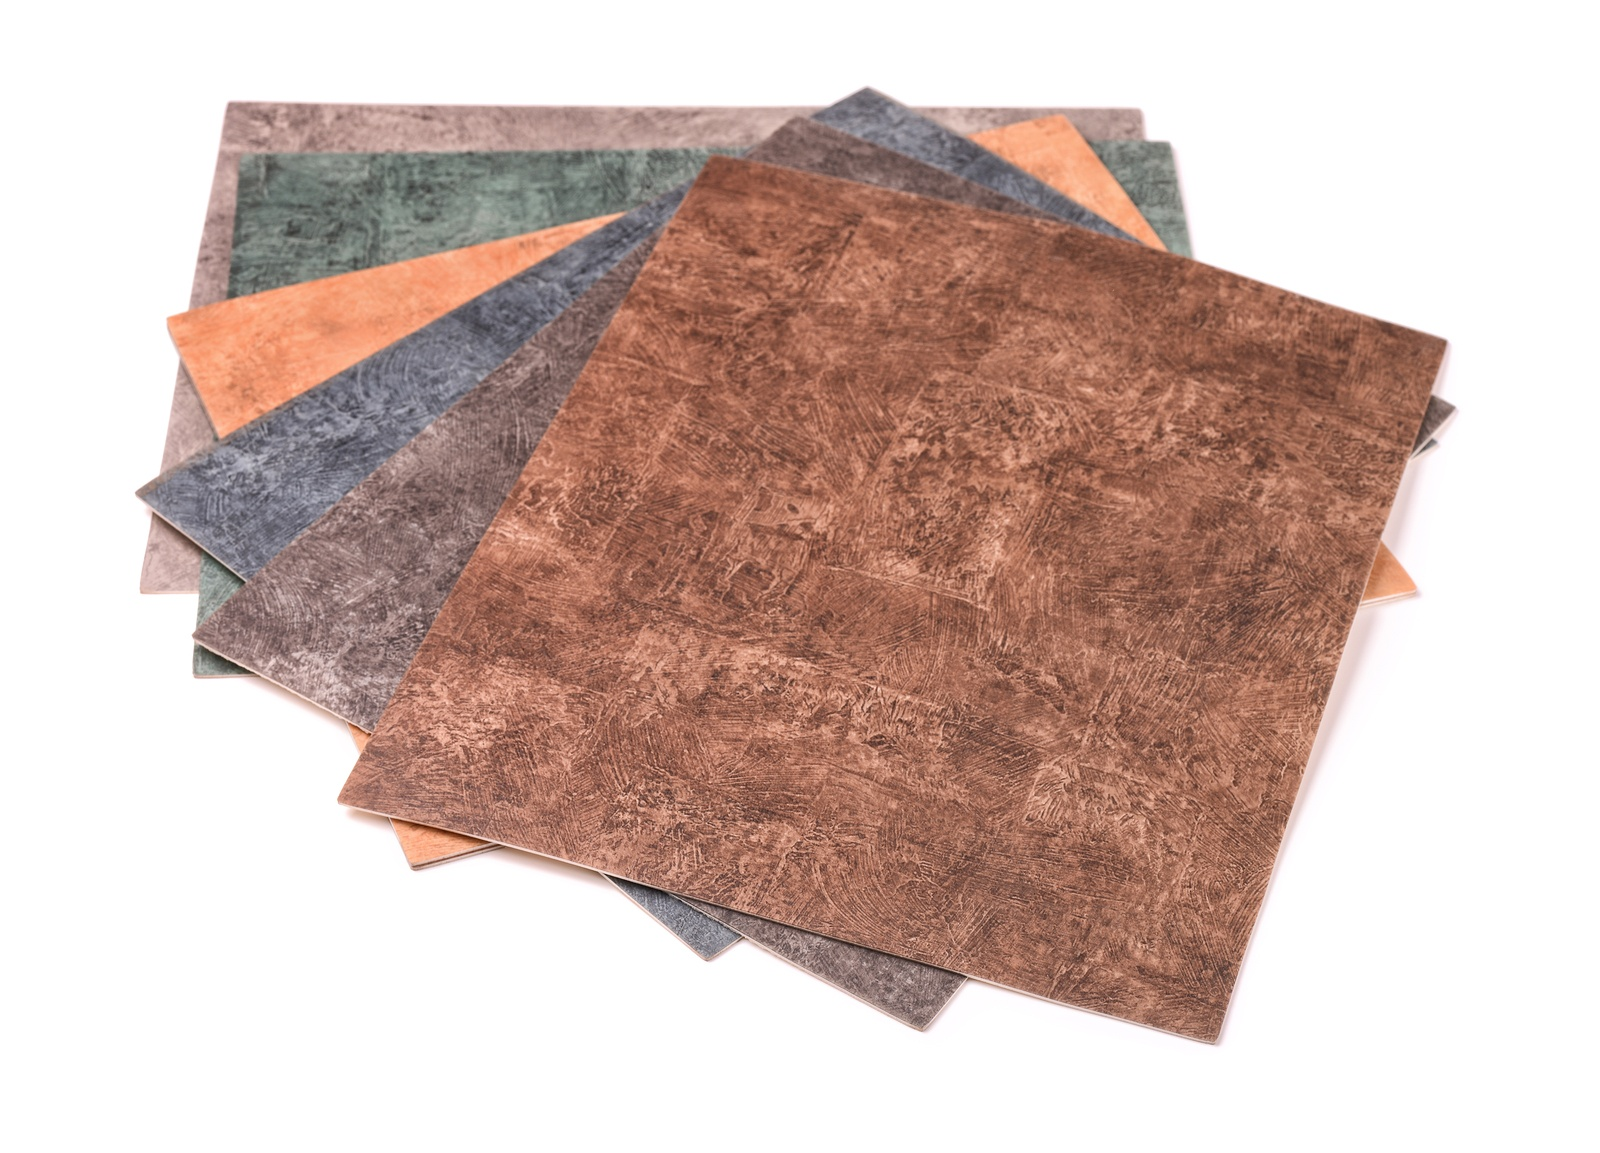 bigstock-Samples-of-linoleum-collectio-145732337.jpg